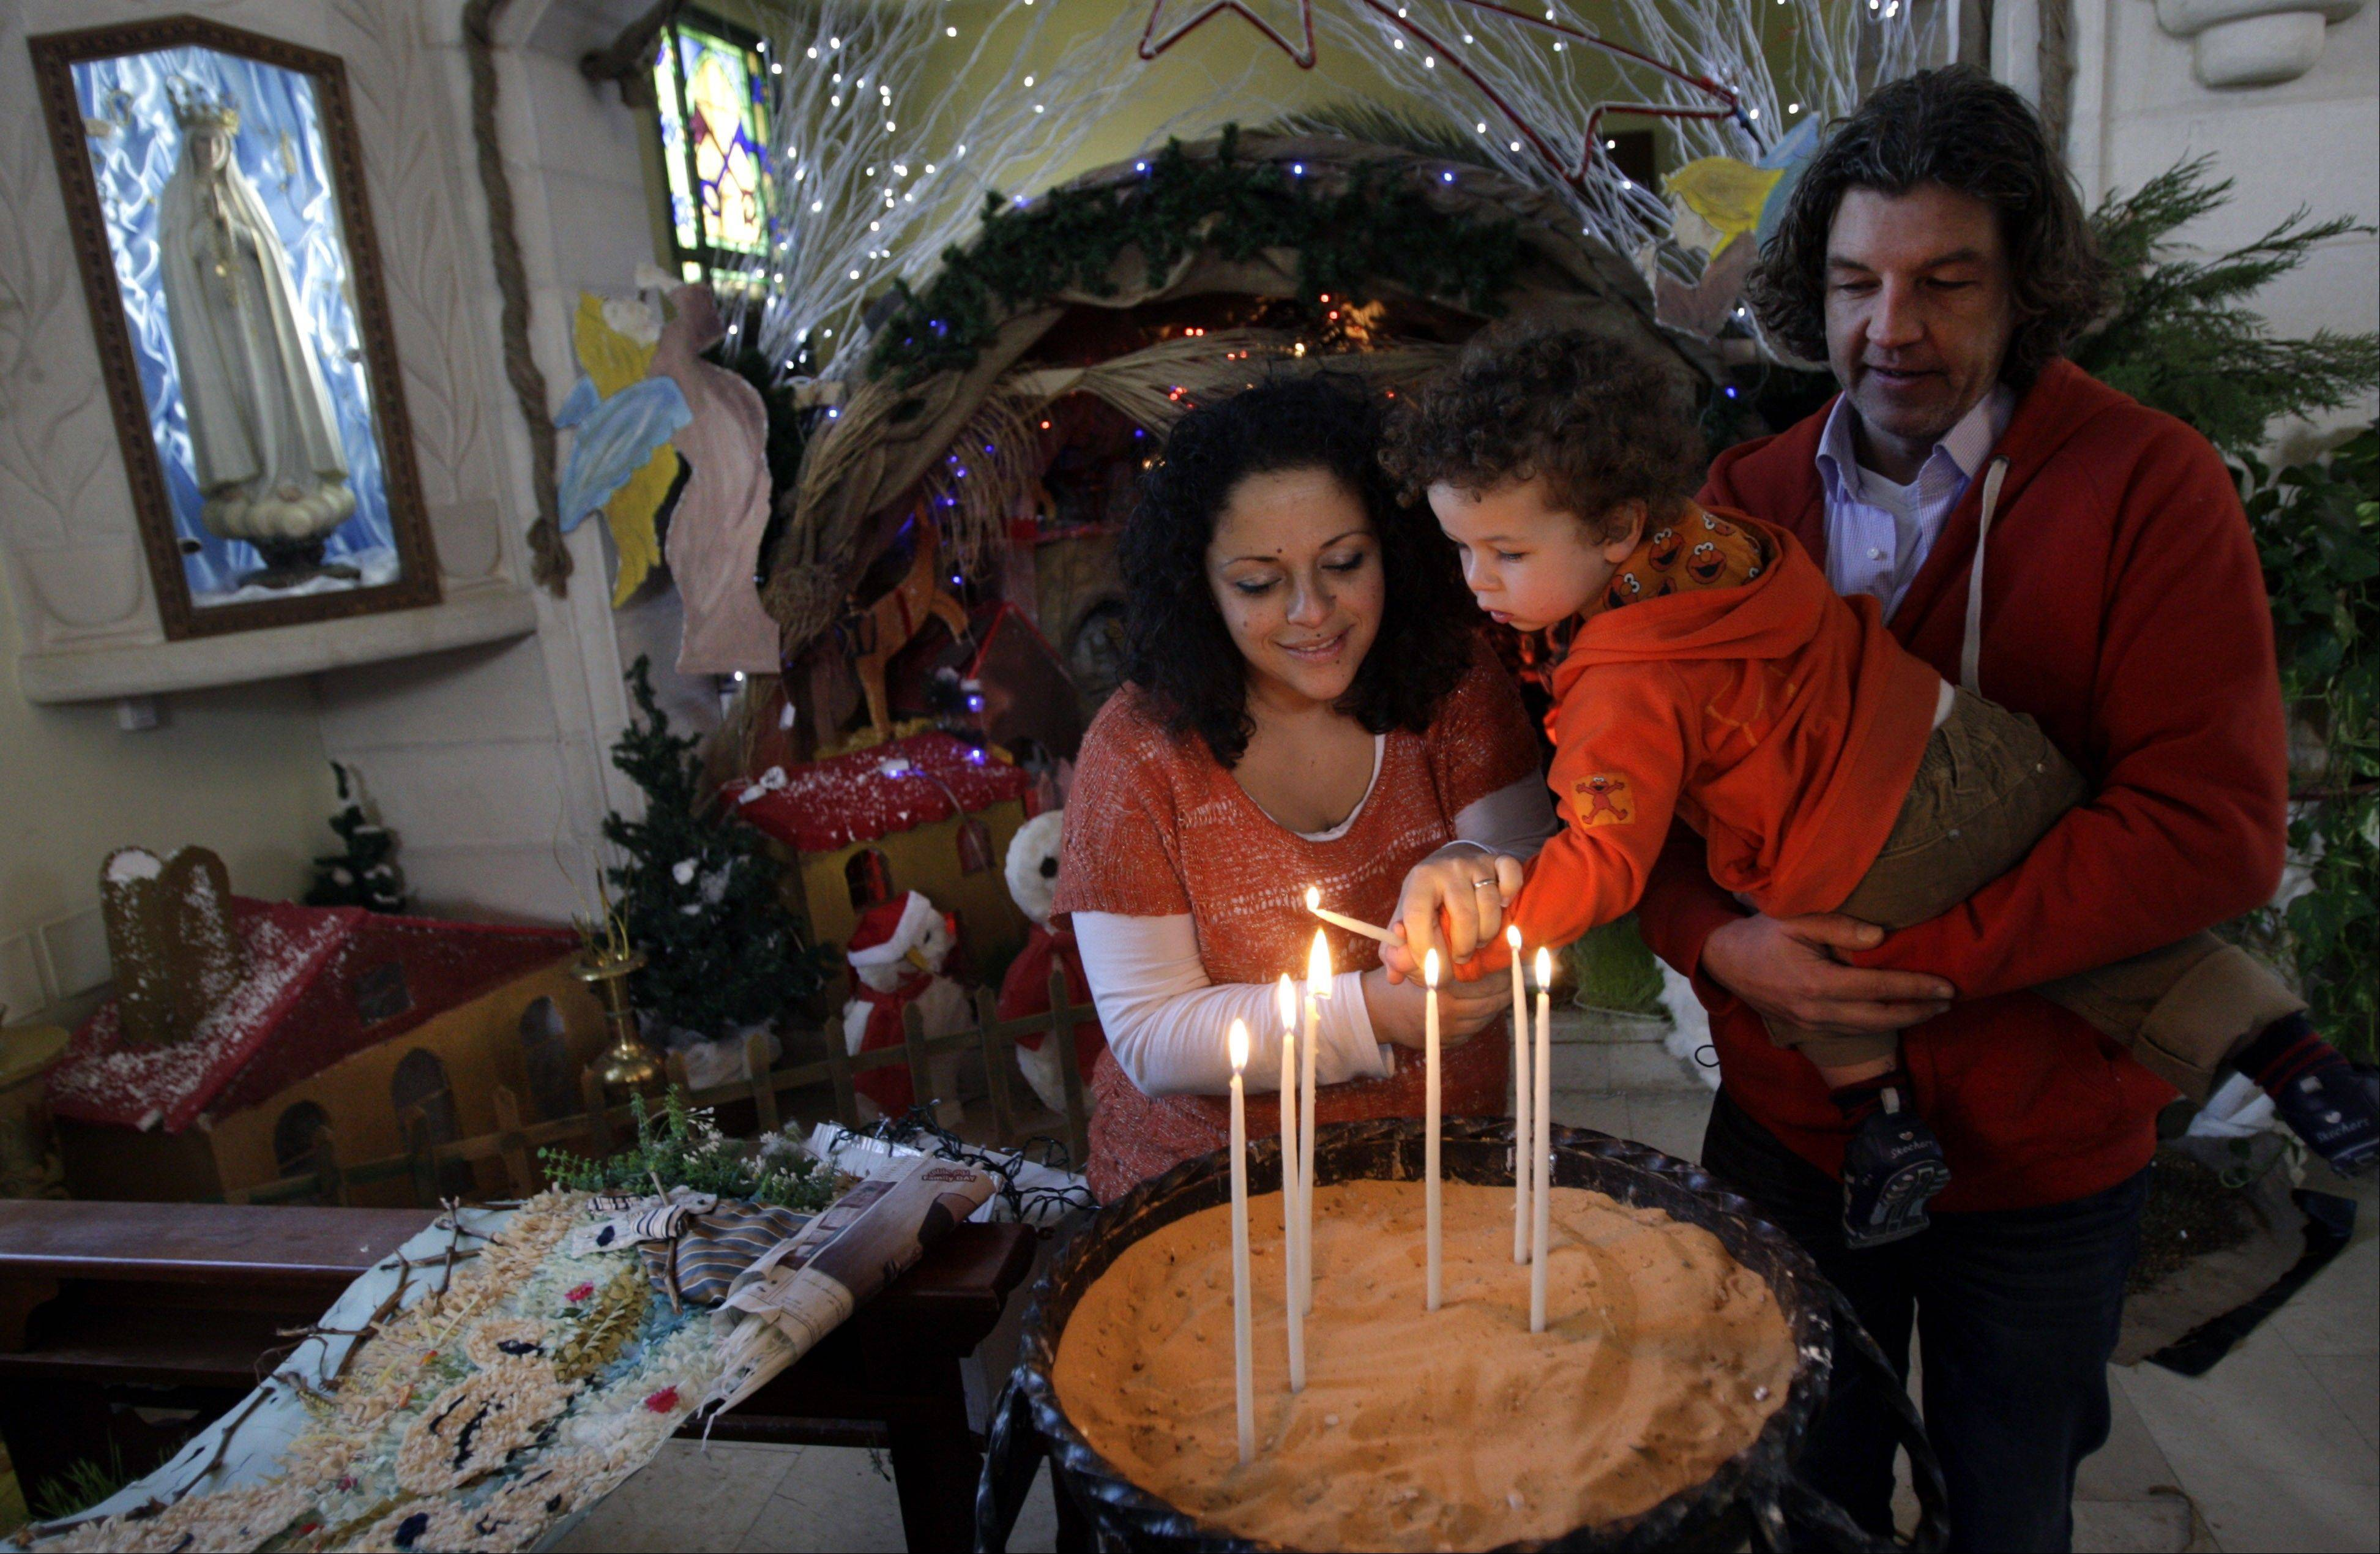 A Dutch family, light candles in front of a Nativity scene at the Latin Patriarch of Jerusalem Church of Visitation, also known as St. Mary's Visitation Church, in preparation for Christmas in the northern West Bank village of Zababdeh near Jenin, Tuesday, Dec. 24, 2013.